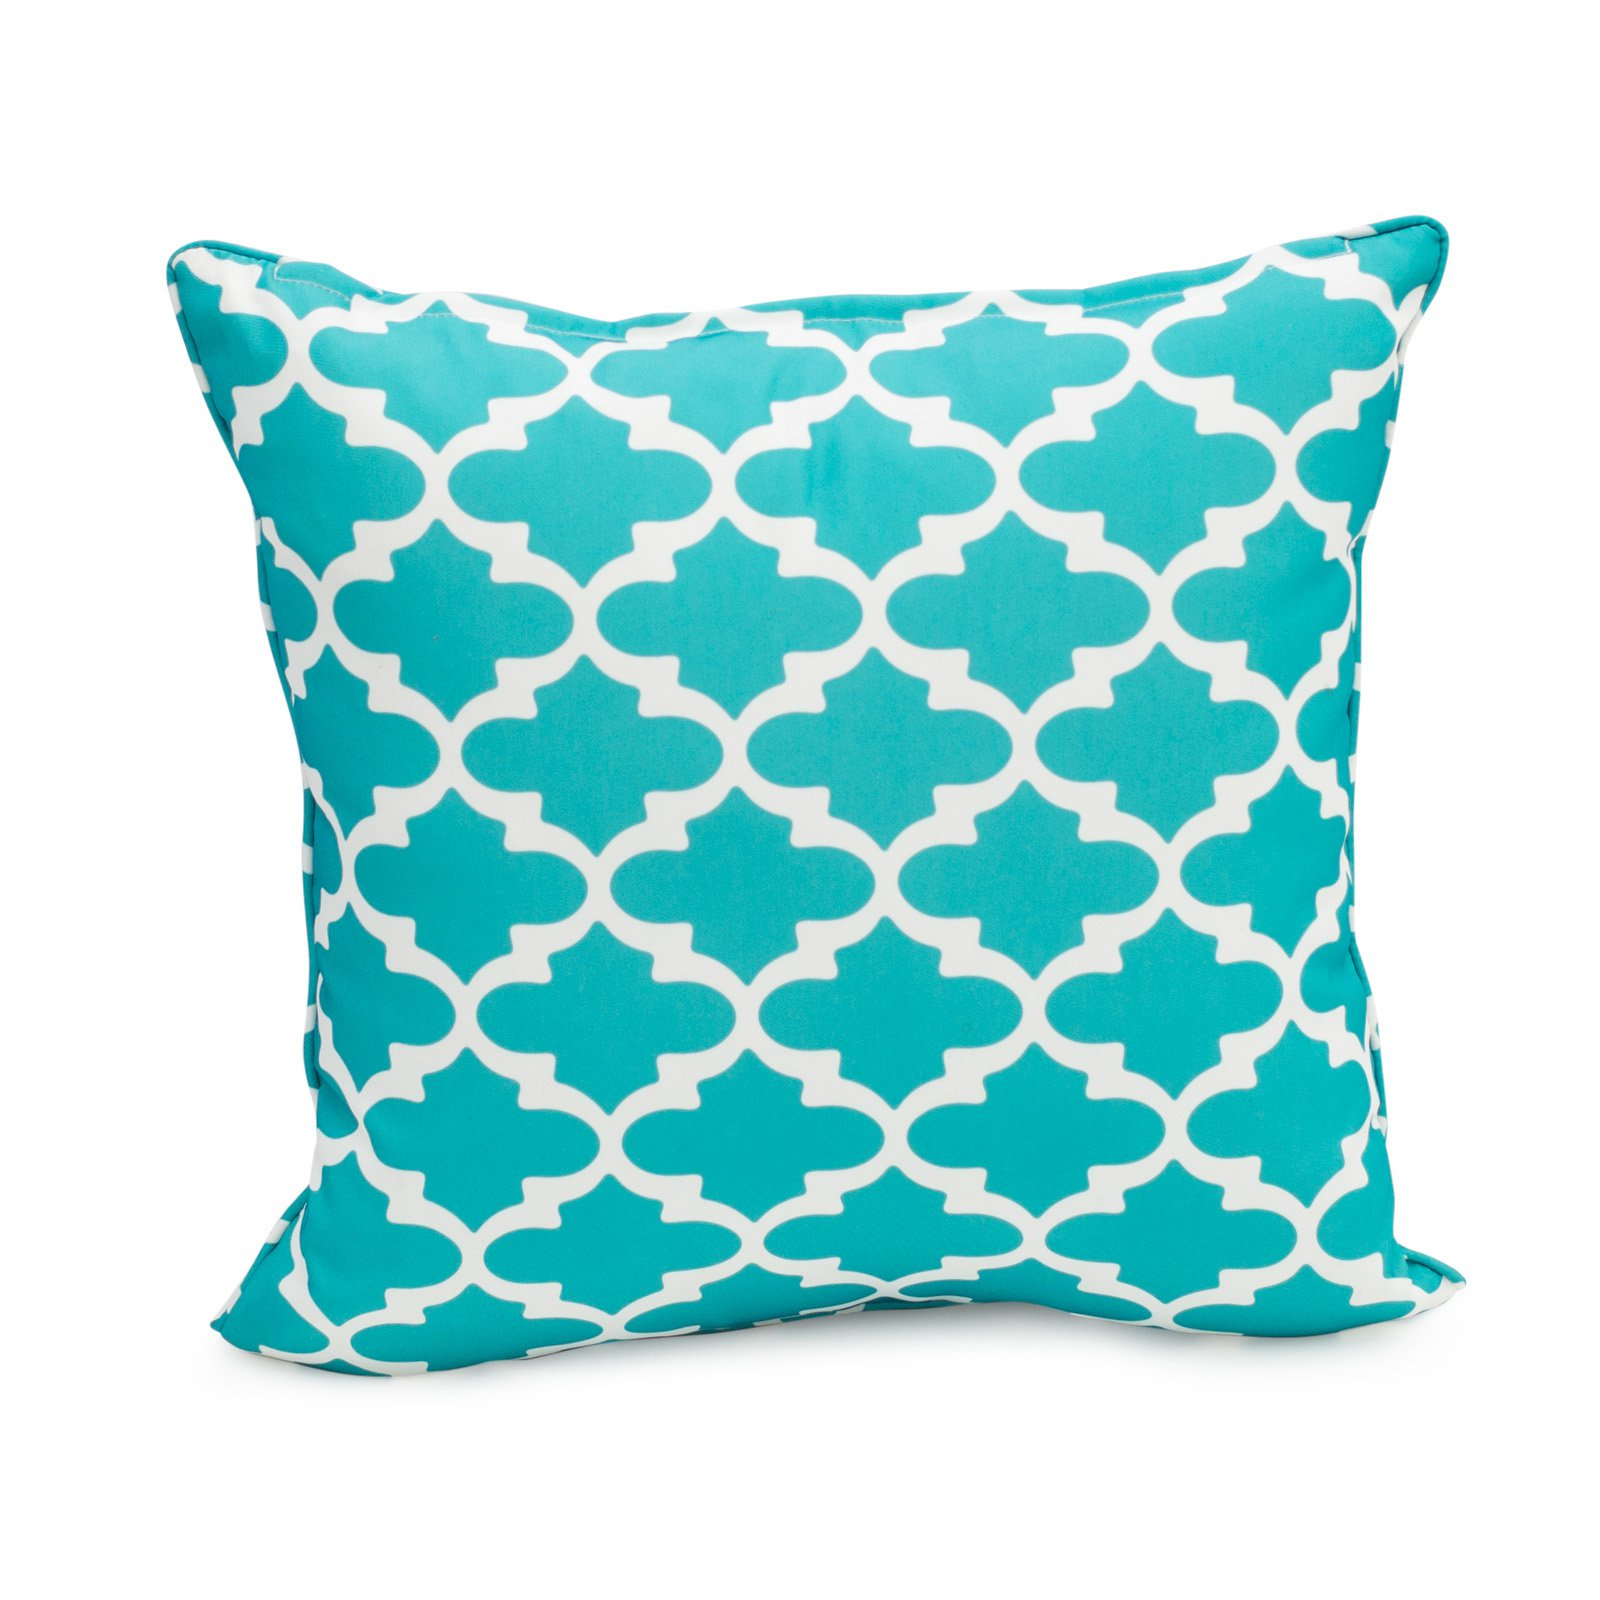 Coral Coast Lakeside 20 X 20 In. Outdoor Throw Pillows   Set Of 2